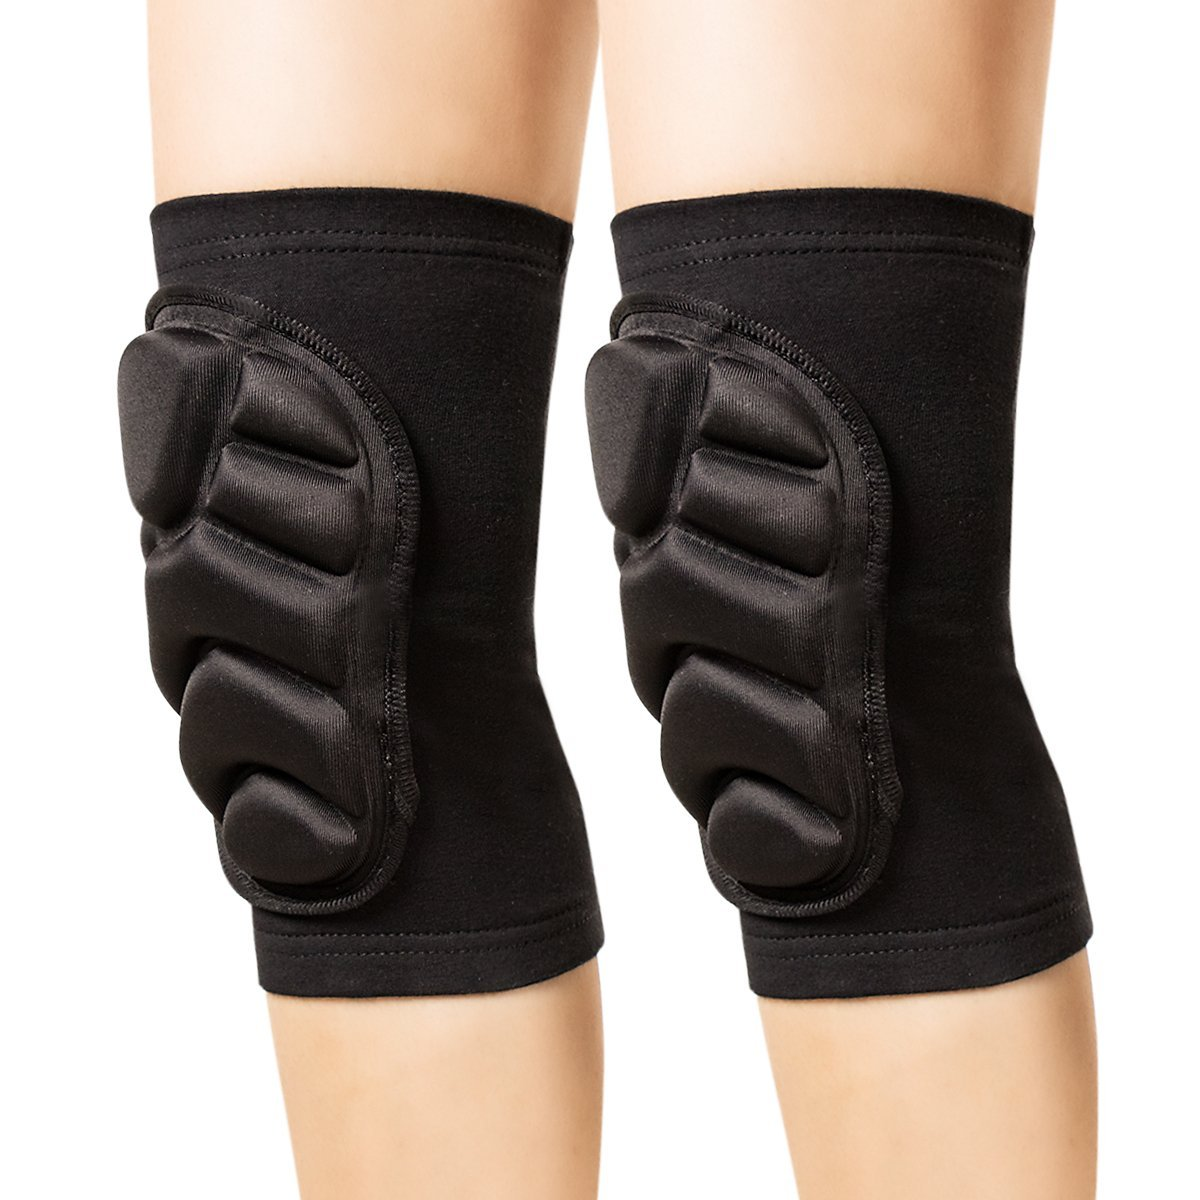 Posher FL6 Knee Pads, (1Pair) Thick Sponge Anti-collision Kneeling Kneepad Support for Outdoor, Climbing, Skating and Sports